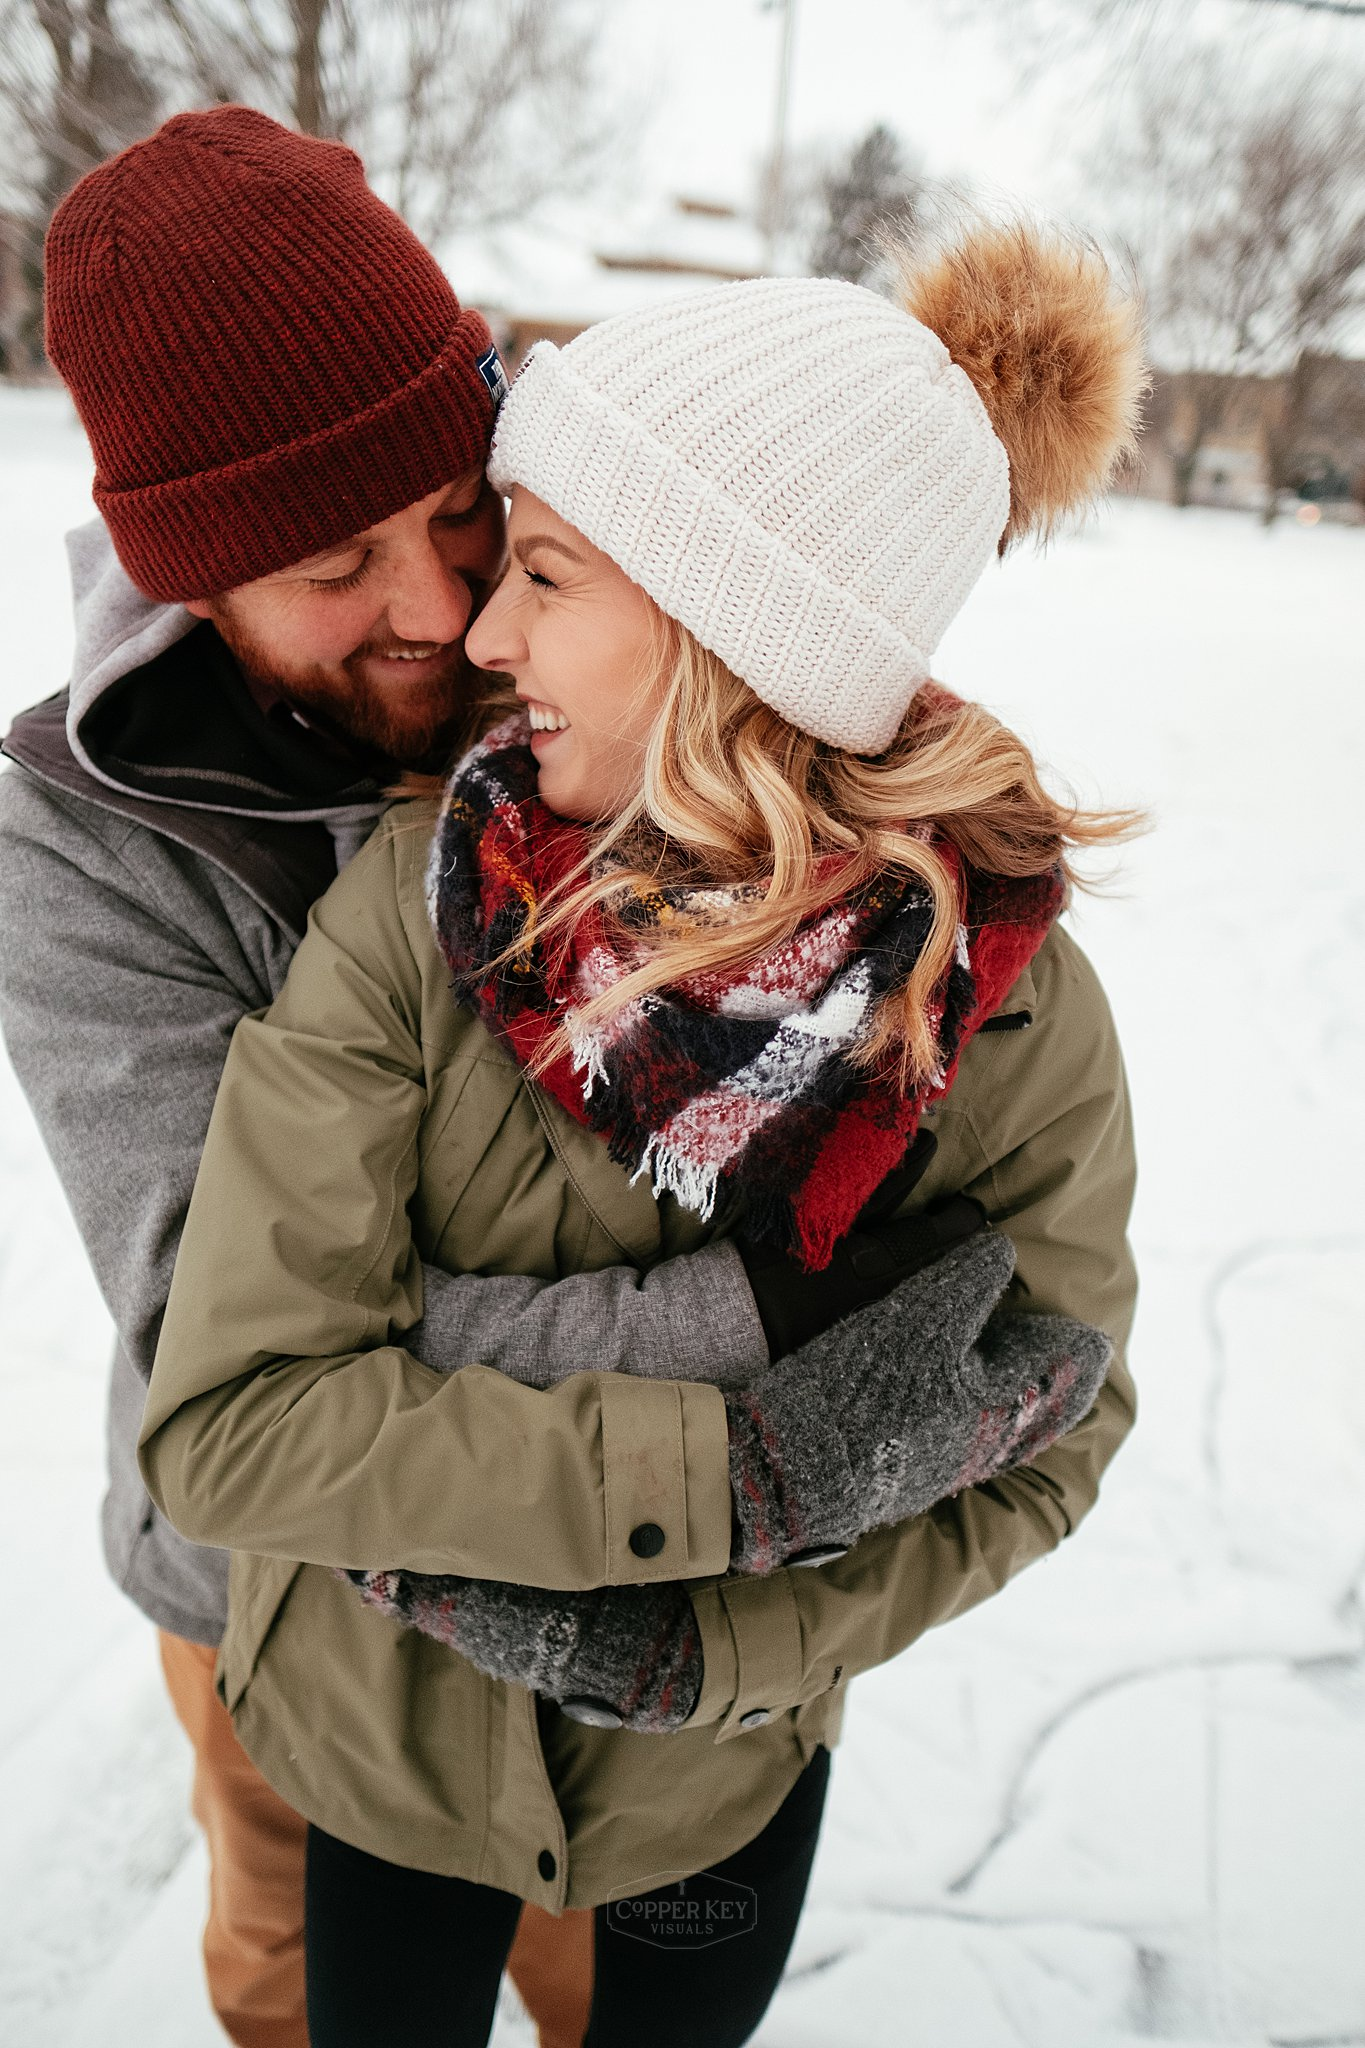 Copper Key Visuals Wisconsin Ice Skating Engagement Session-23.jpg